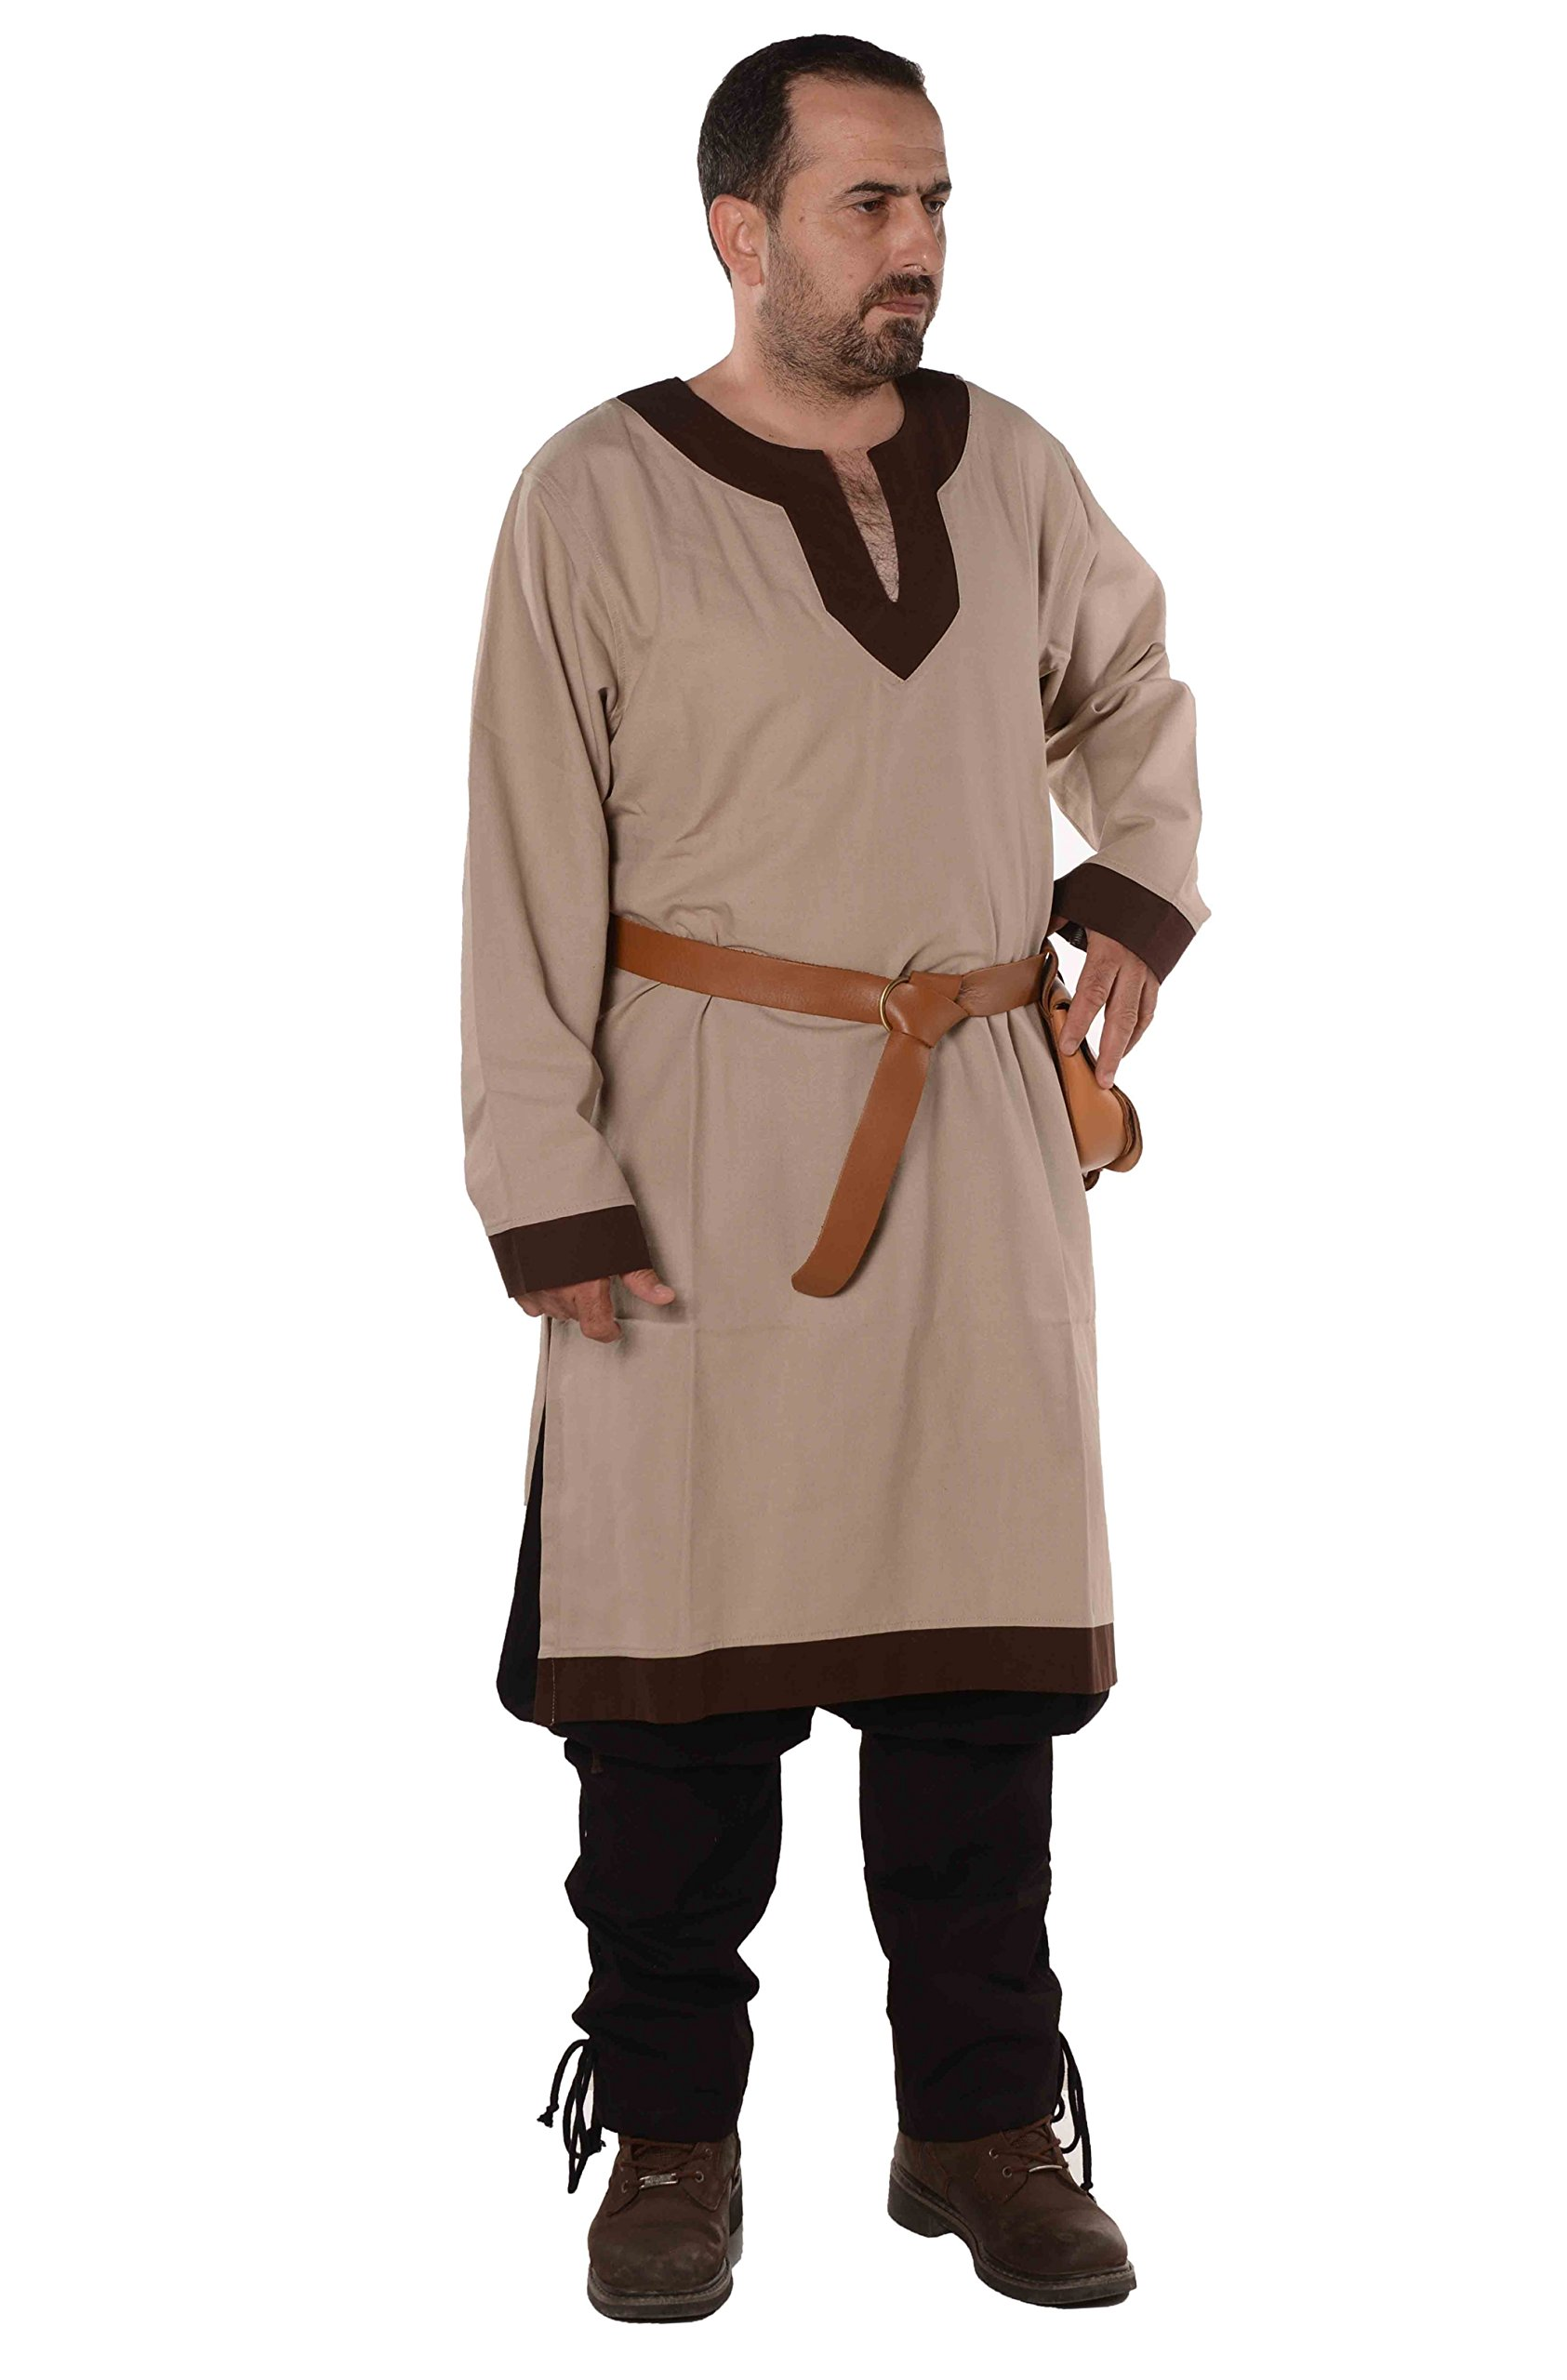 Arthur Medieval, Viking, LARP Tunic - Made in Turkey by bycalvina